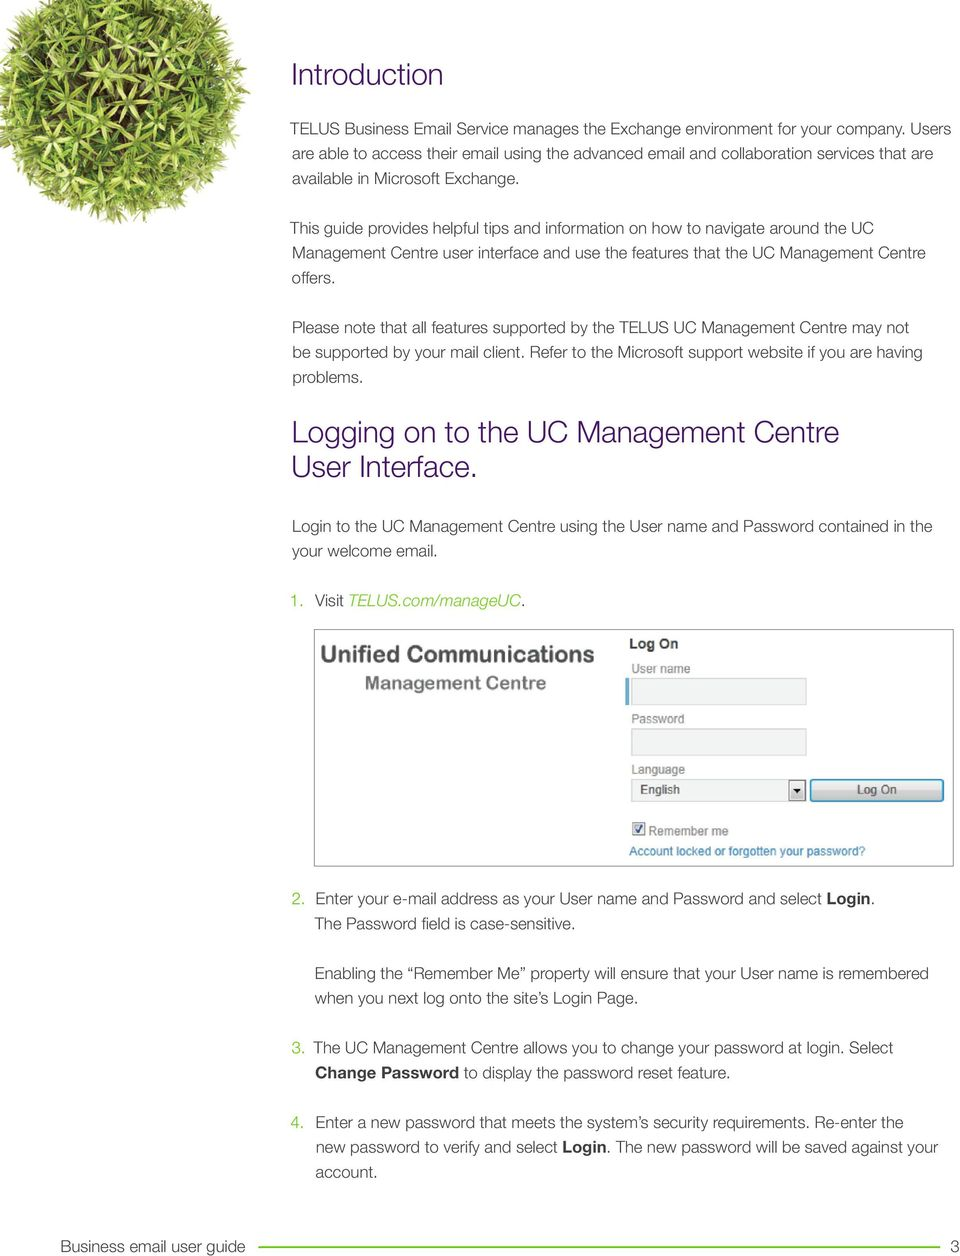 This guide provides helpful tips and information on how to navigate around the UC Management Centre user interface and use the features that the UC Management Centre offers.